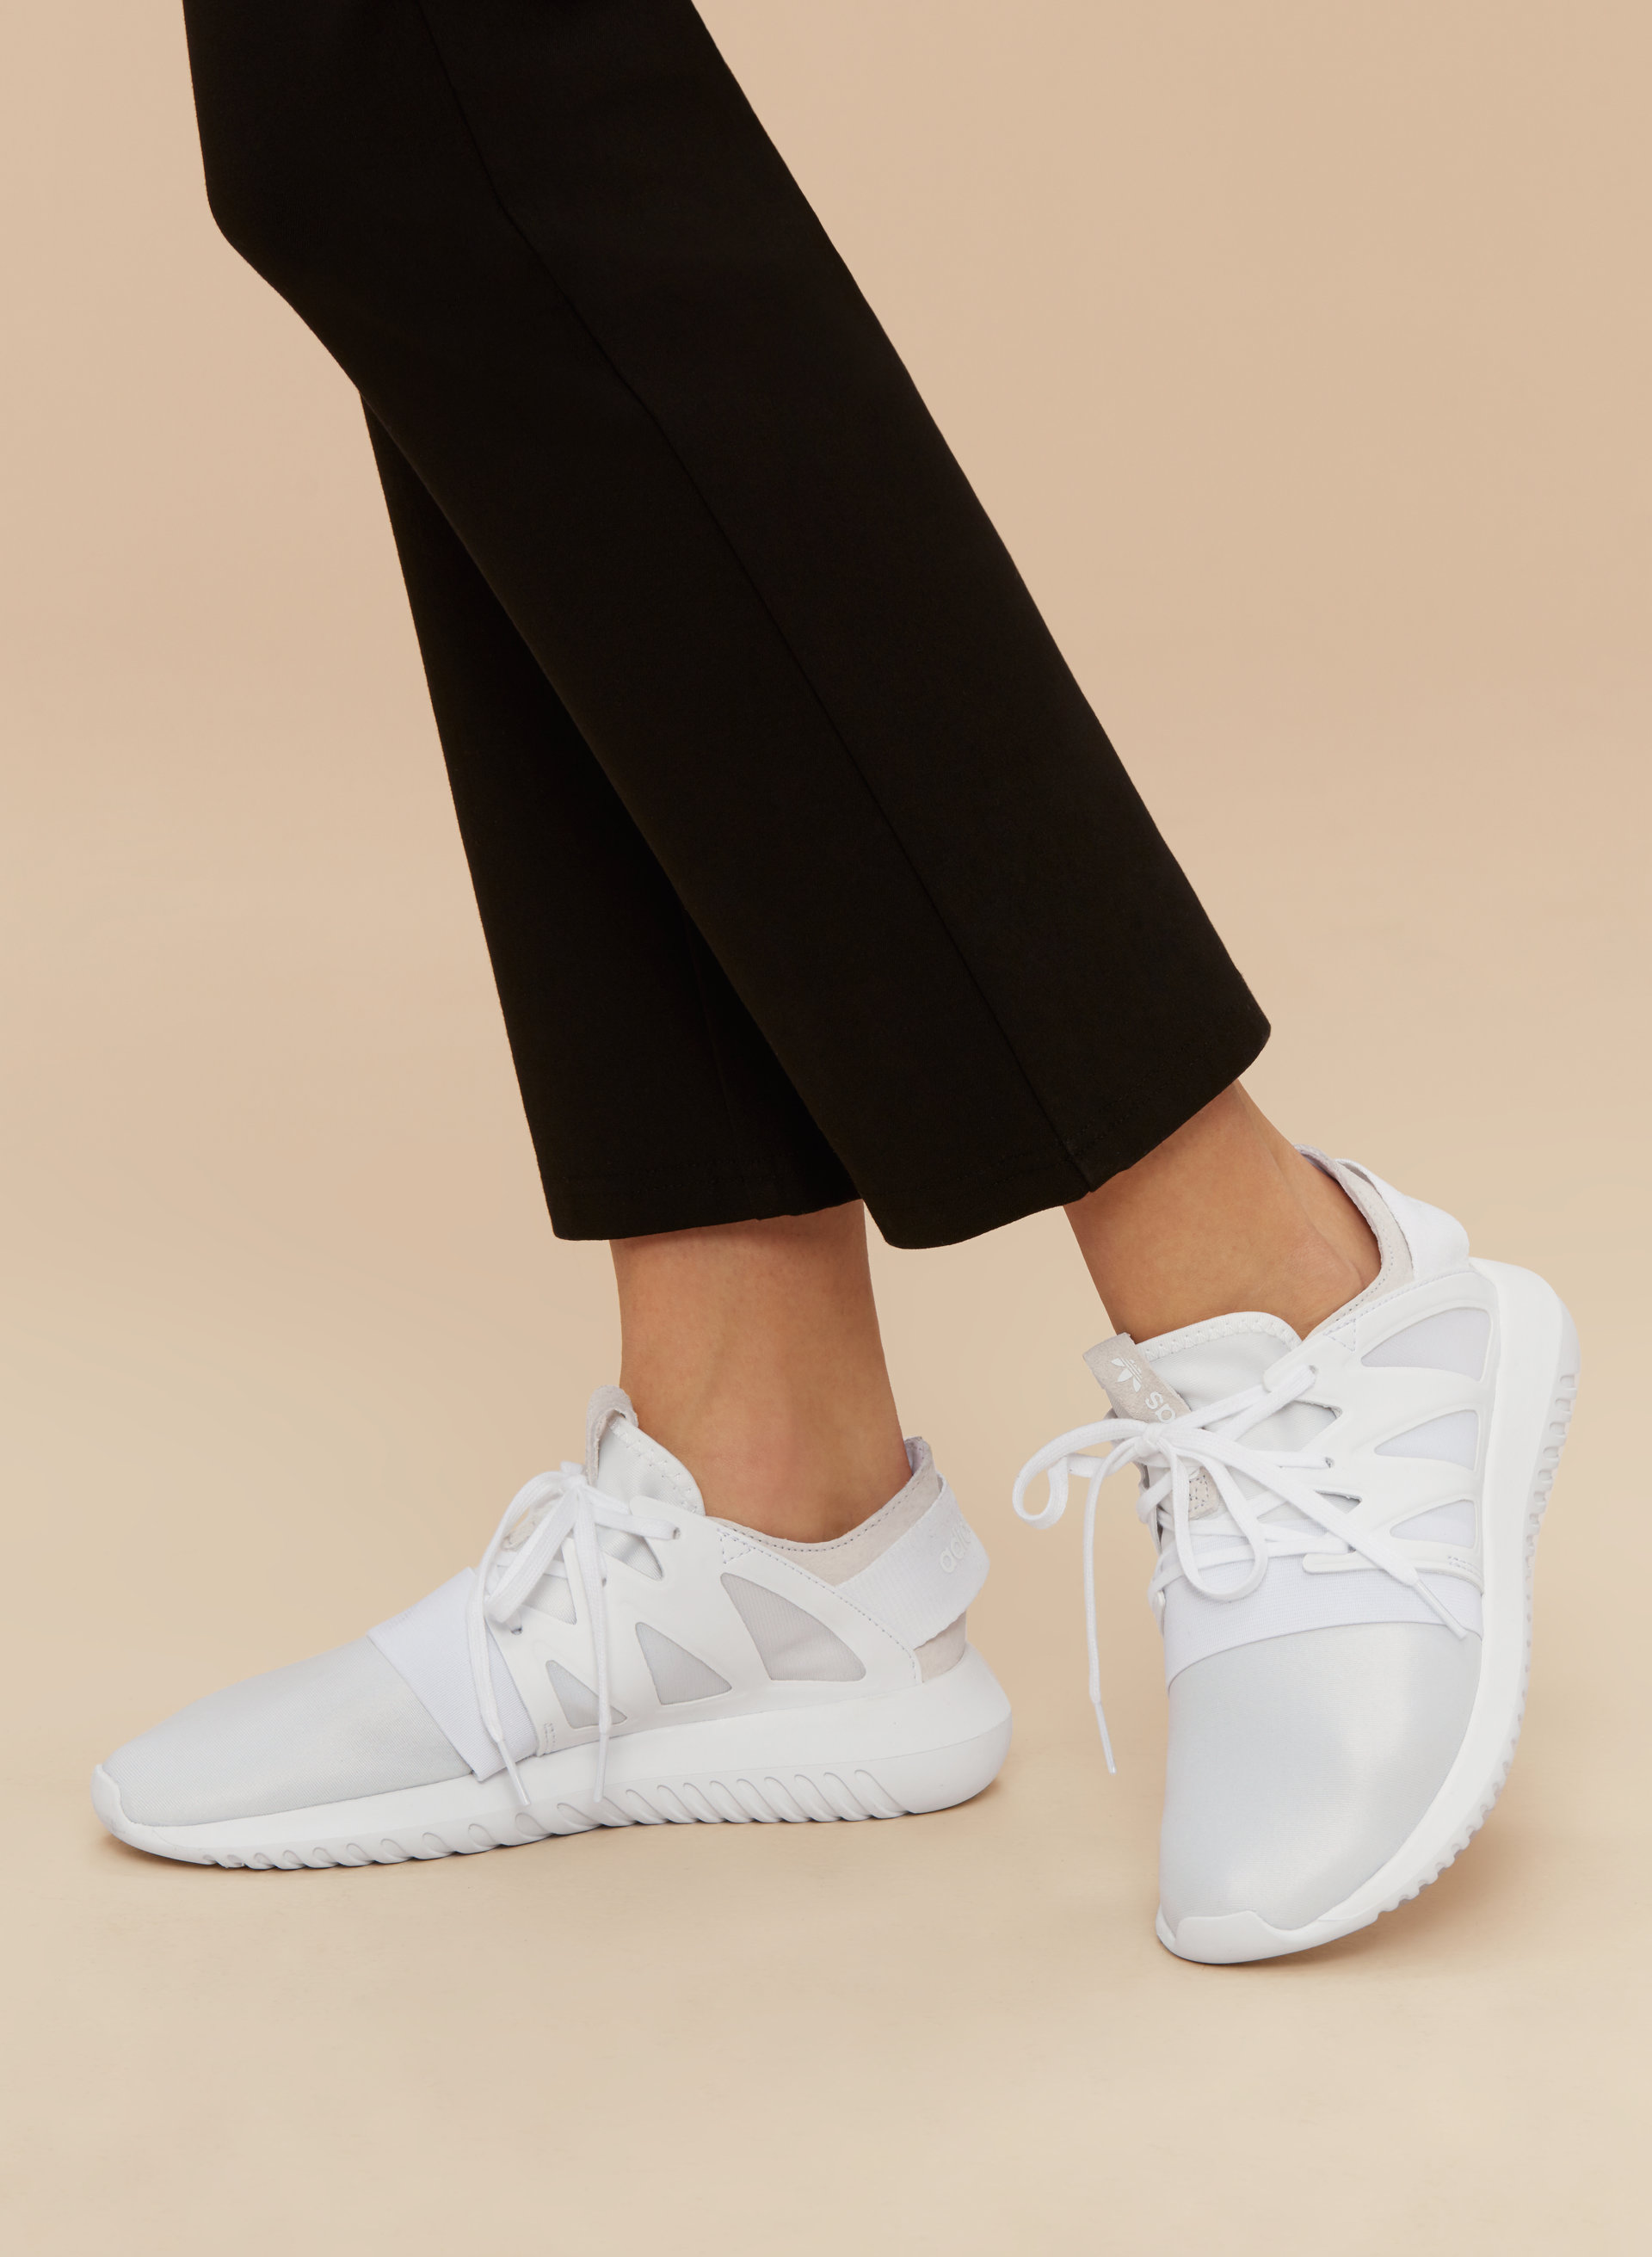 Tubular Viral Shoes adidas NZ